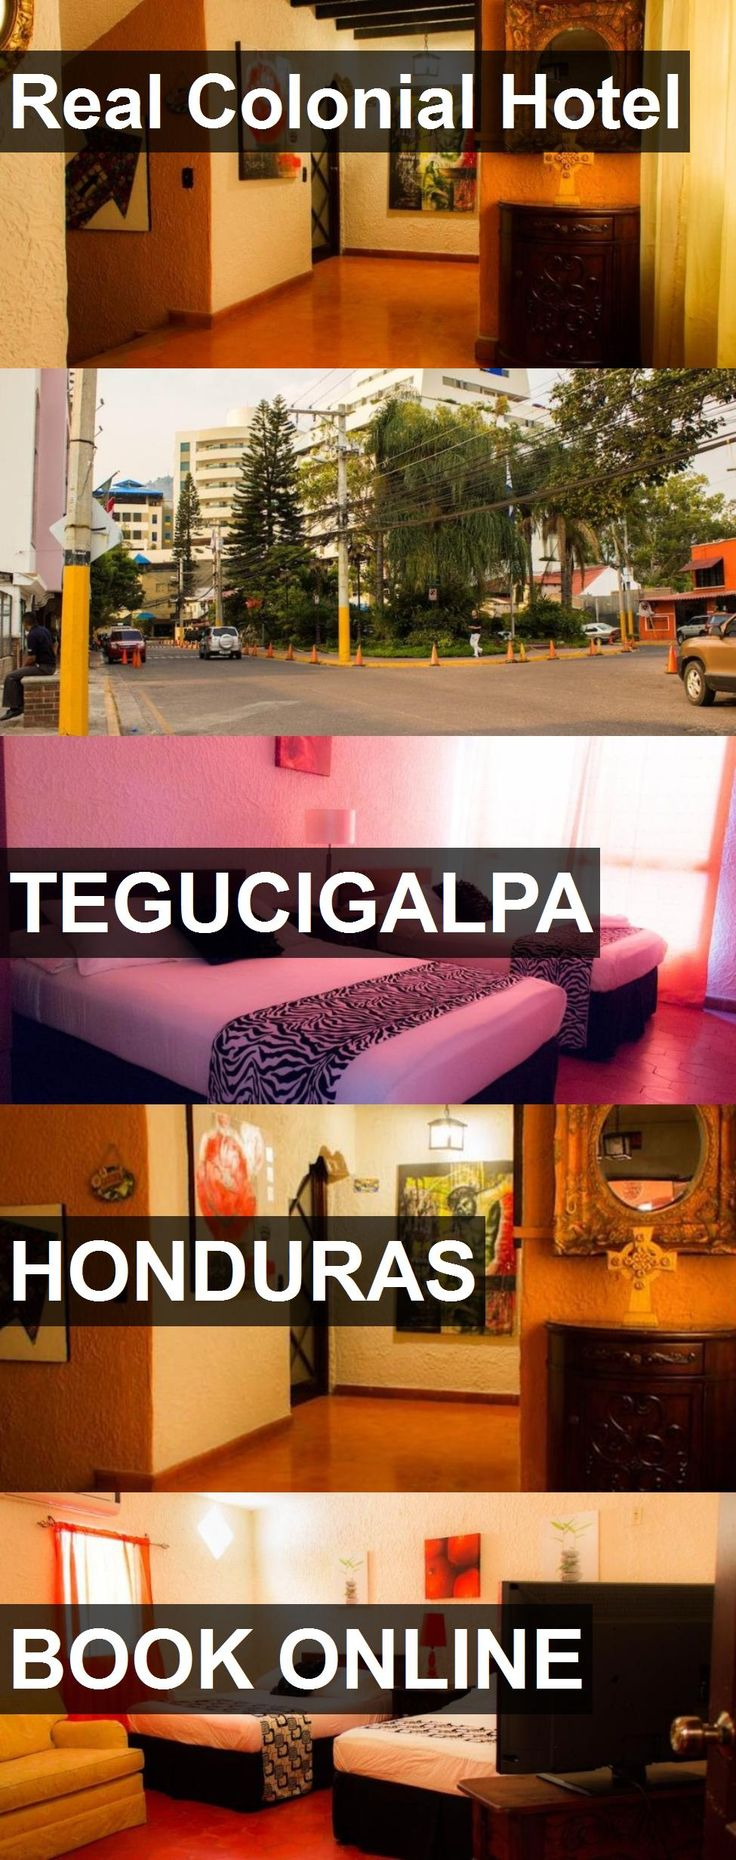 Hotel Real Colonial Hotel in Tegucigalpa, Honduras. For more information, photos, reviews and best prices please follow the link. #Honduras #Tegucigalpa #RealColonialHotel #hotel #travel #vacation